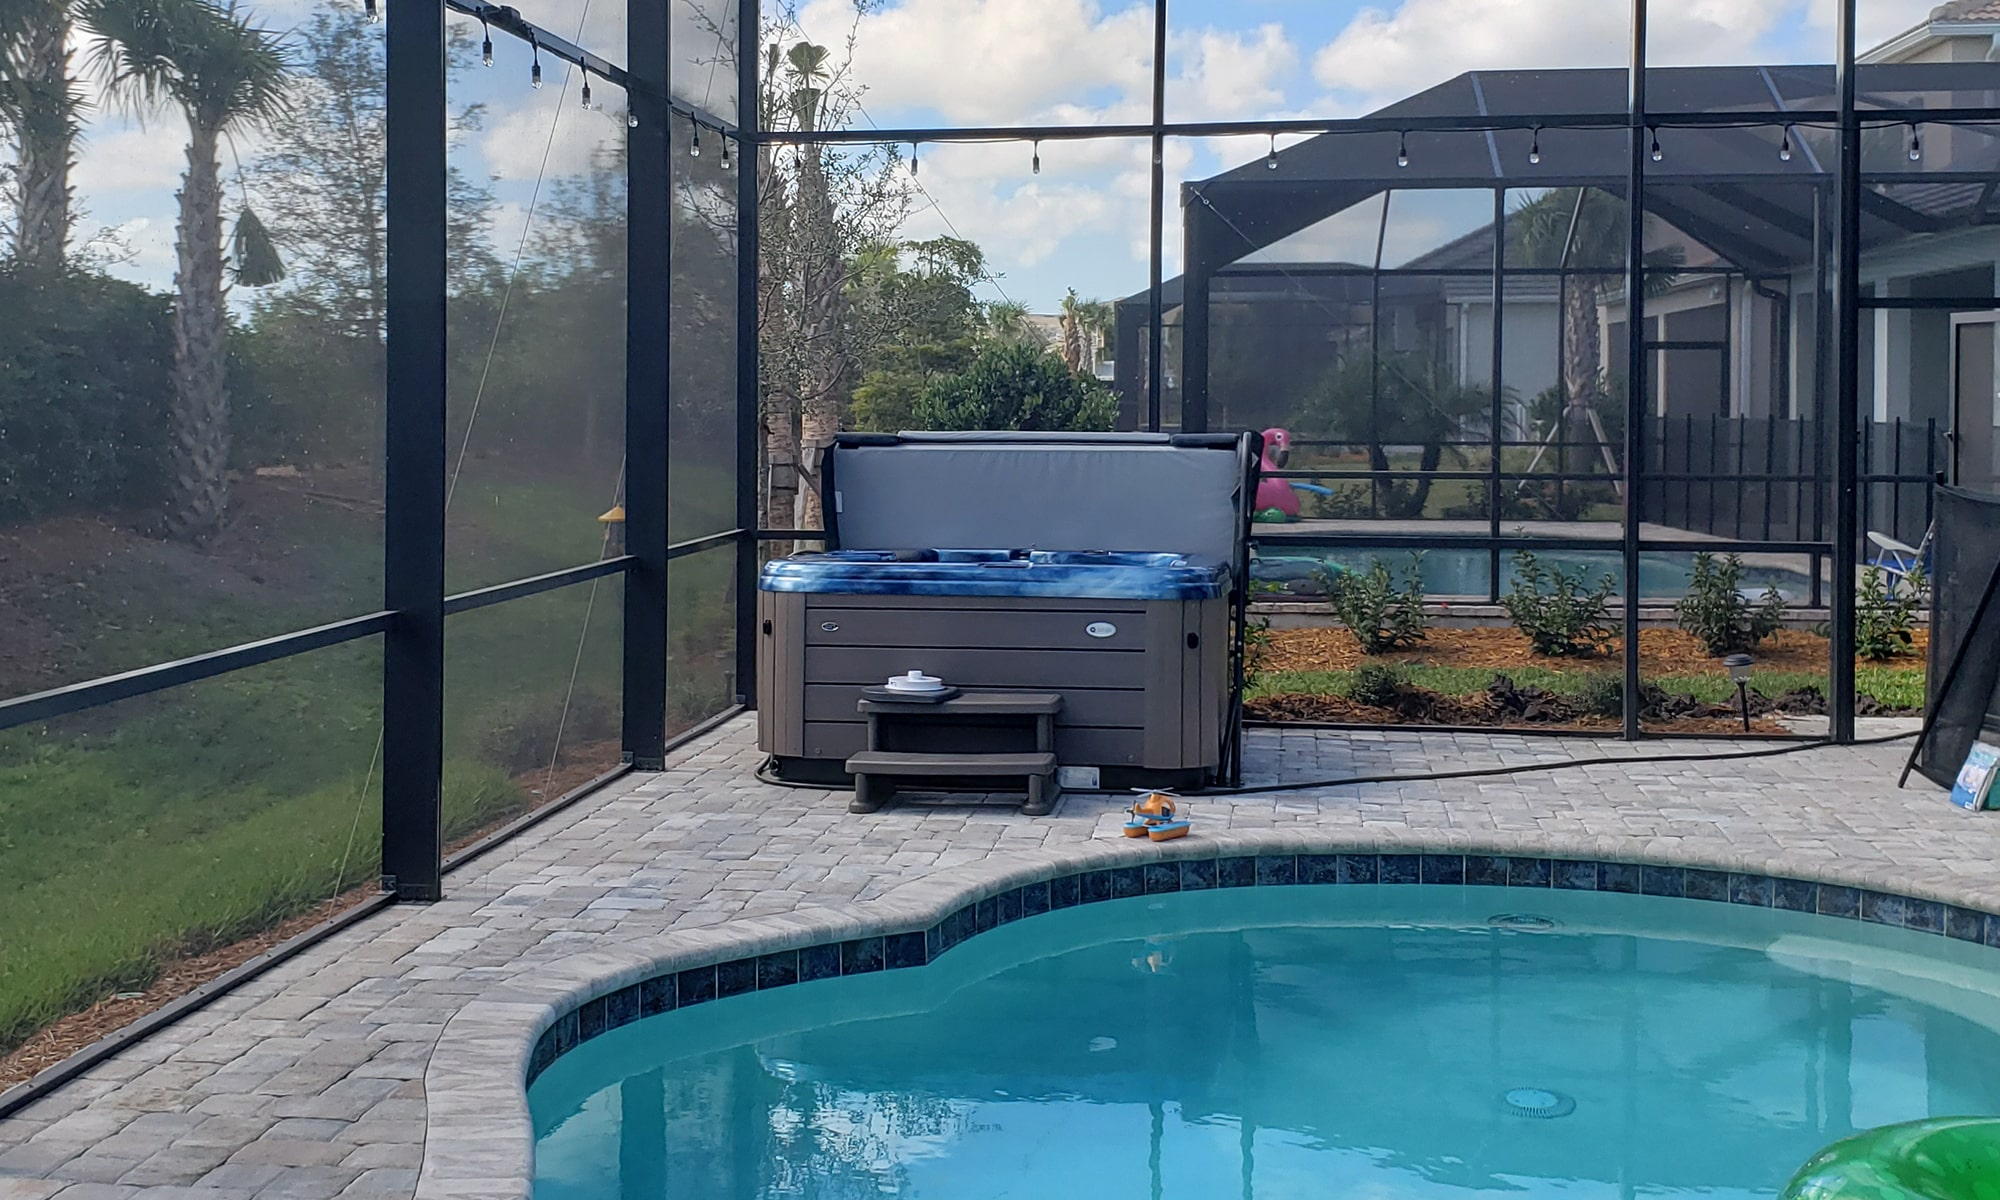 Whirlpool Spa Installation in Sarasota